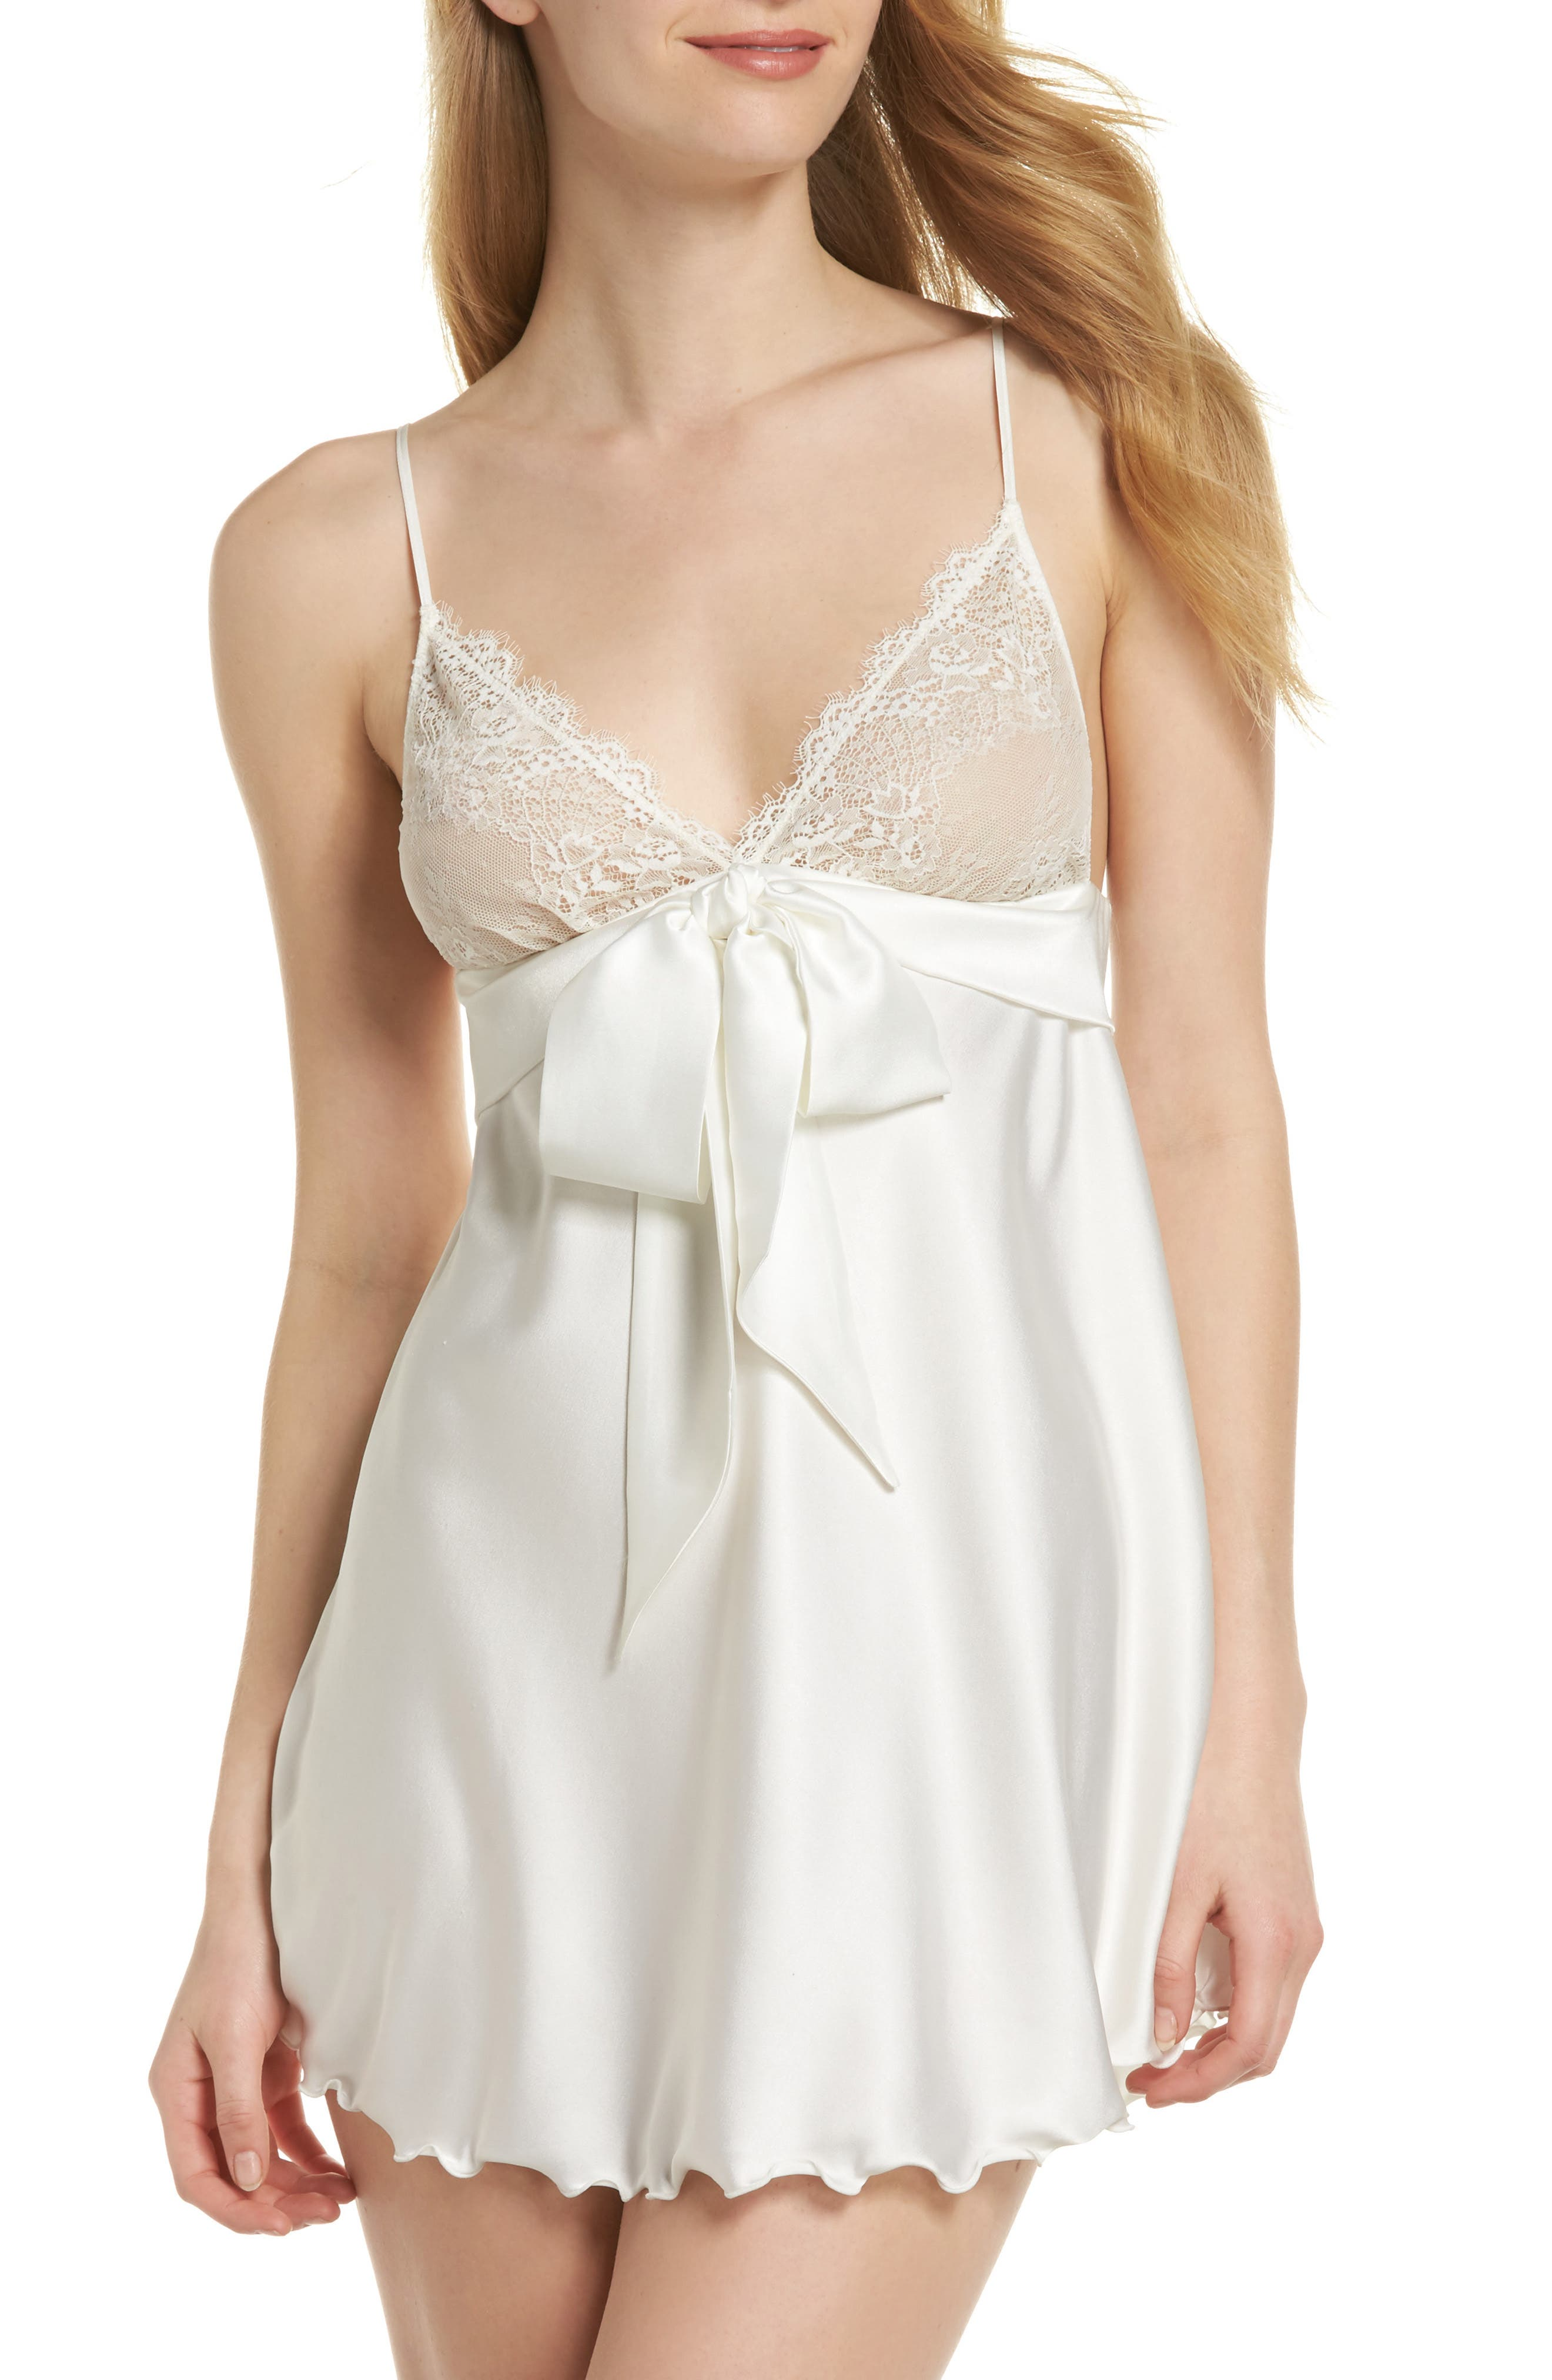 Alternate Image 1 Selected - Samantha Chang Tie Front Babydoll Chemise